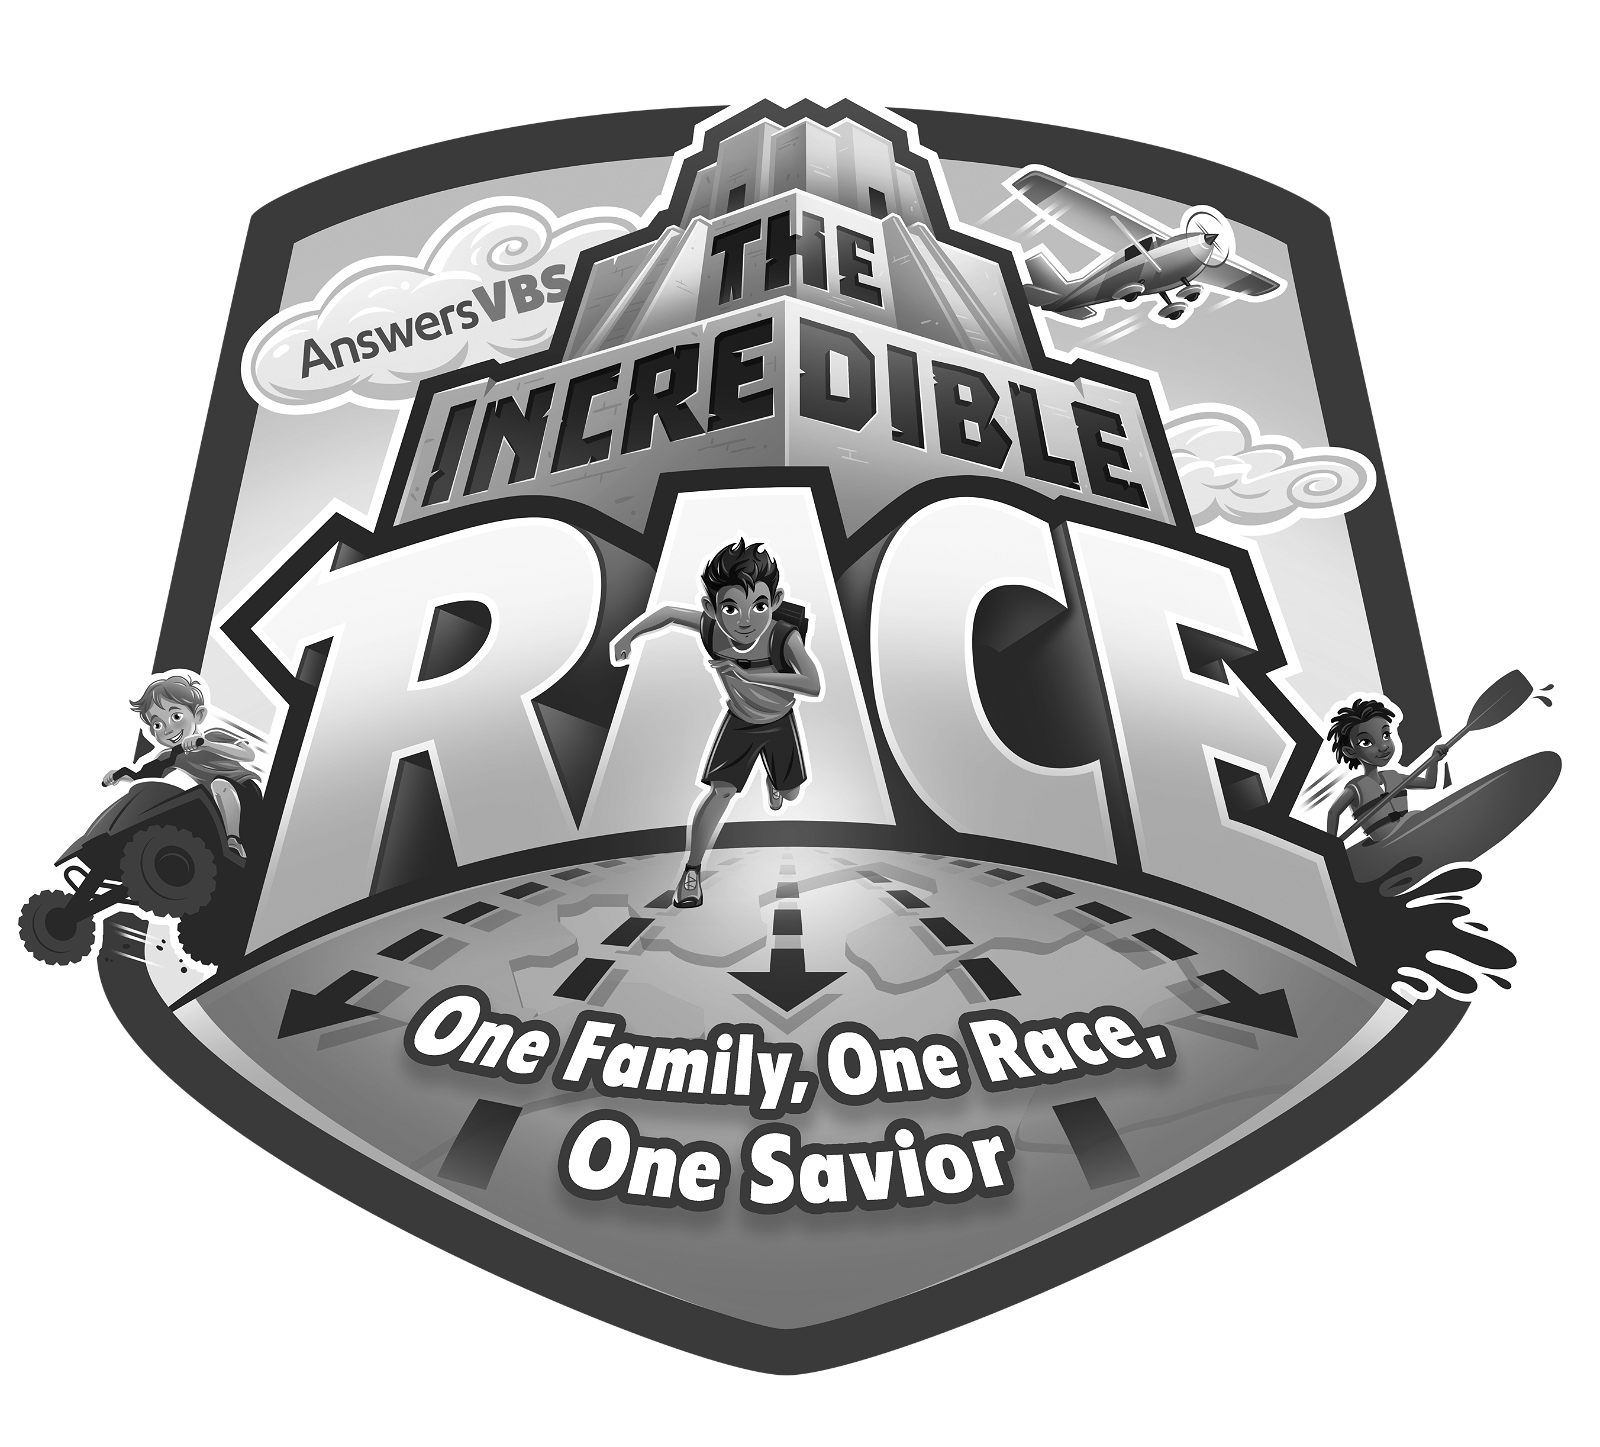 Grayscale The Incredible Race Logo